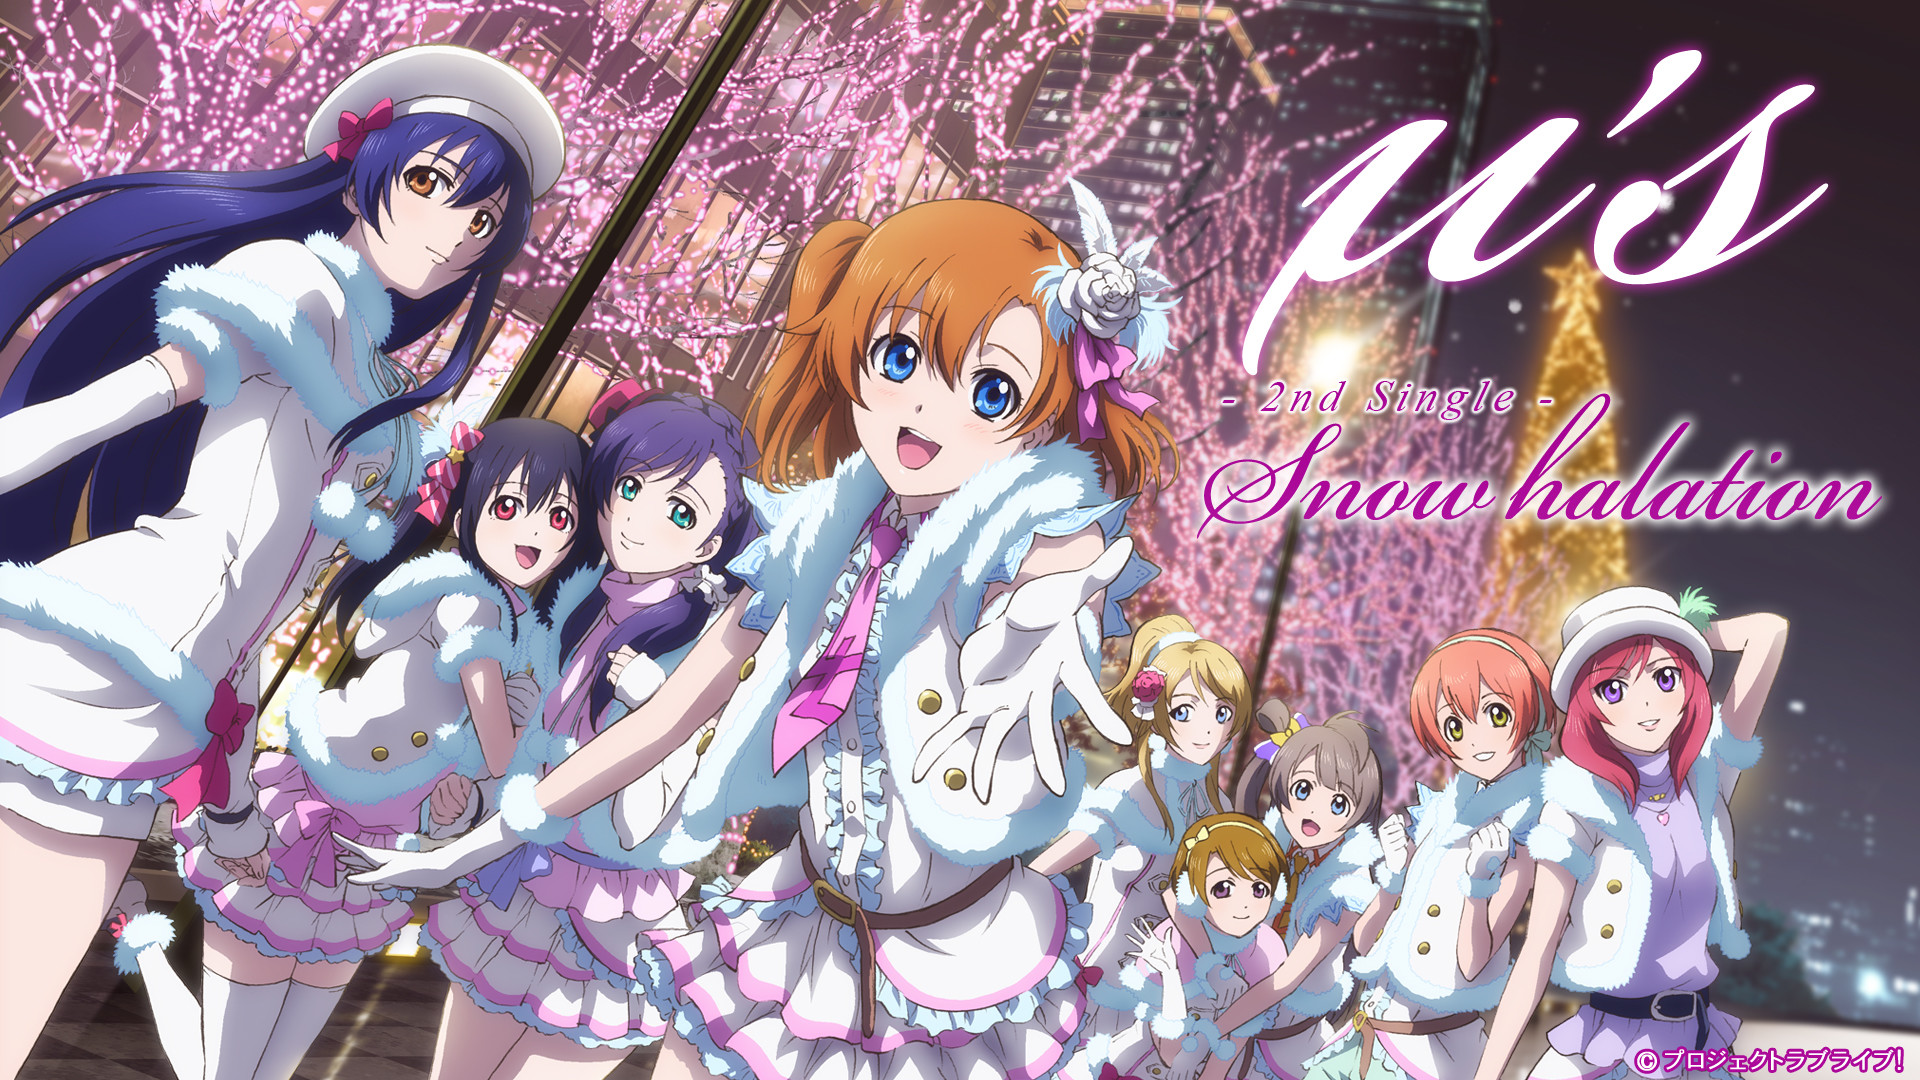 Res: 1920x1080, Love Live! Wallpapers 20 - 1920 X 1080